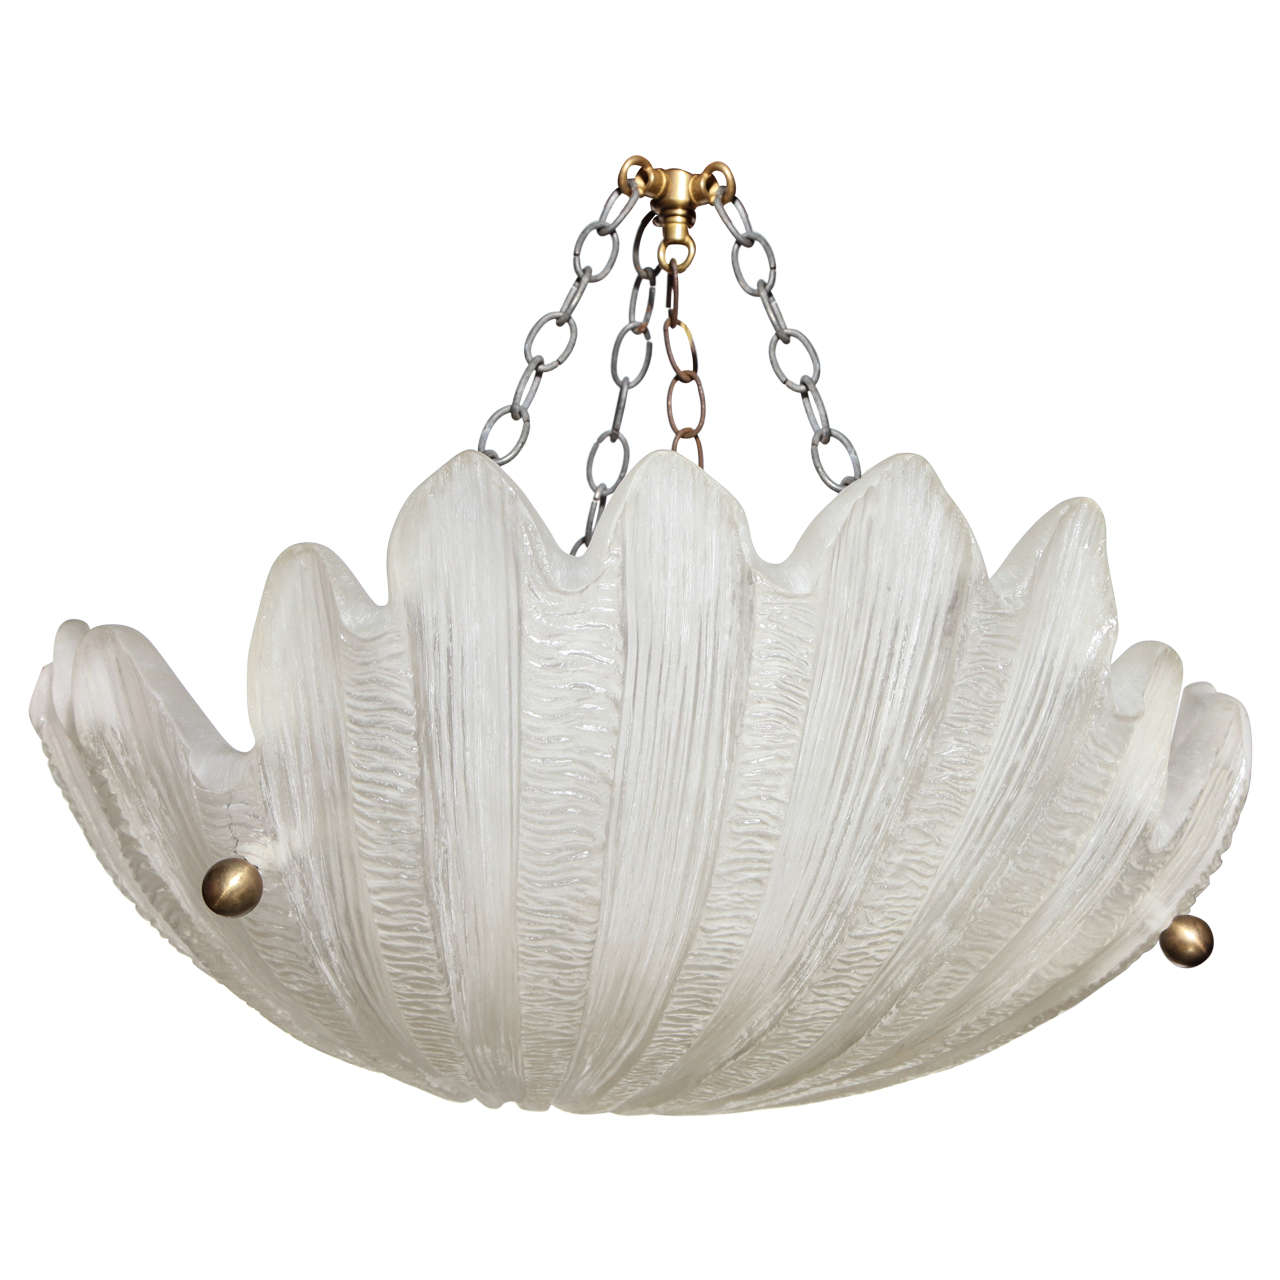 Craig Corona for Sirmos Co. Sheer Frosted Scallop Shell Hanging Lamp, C. 1970